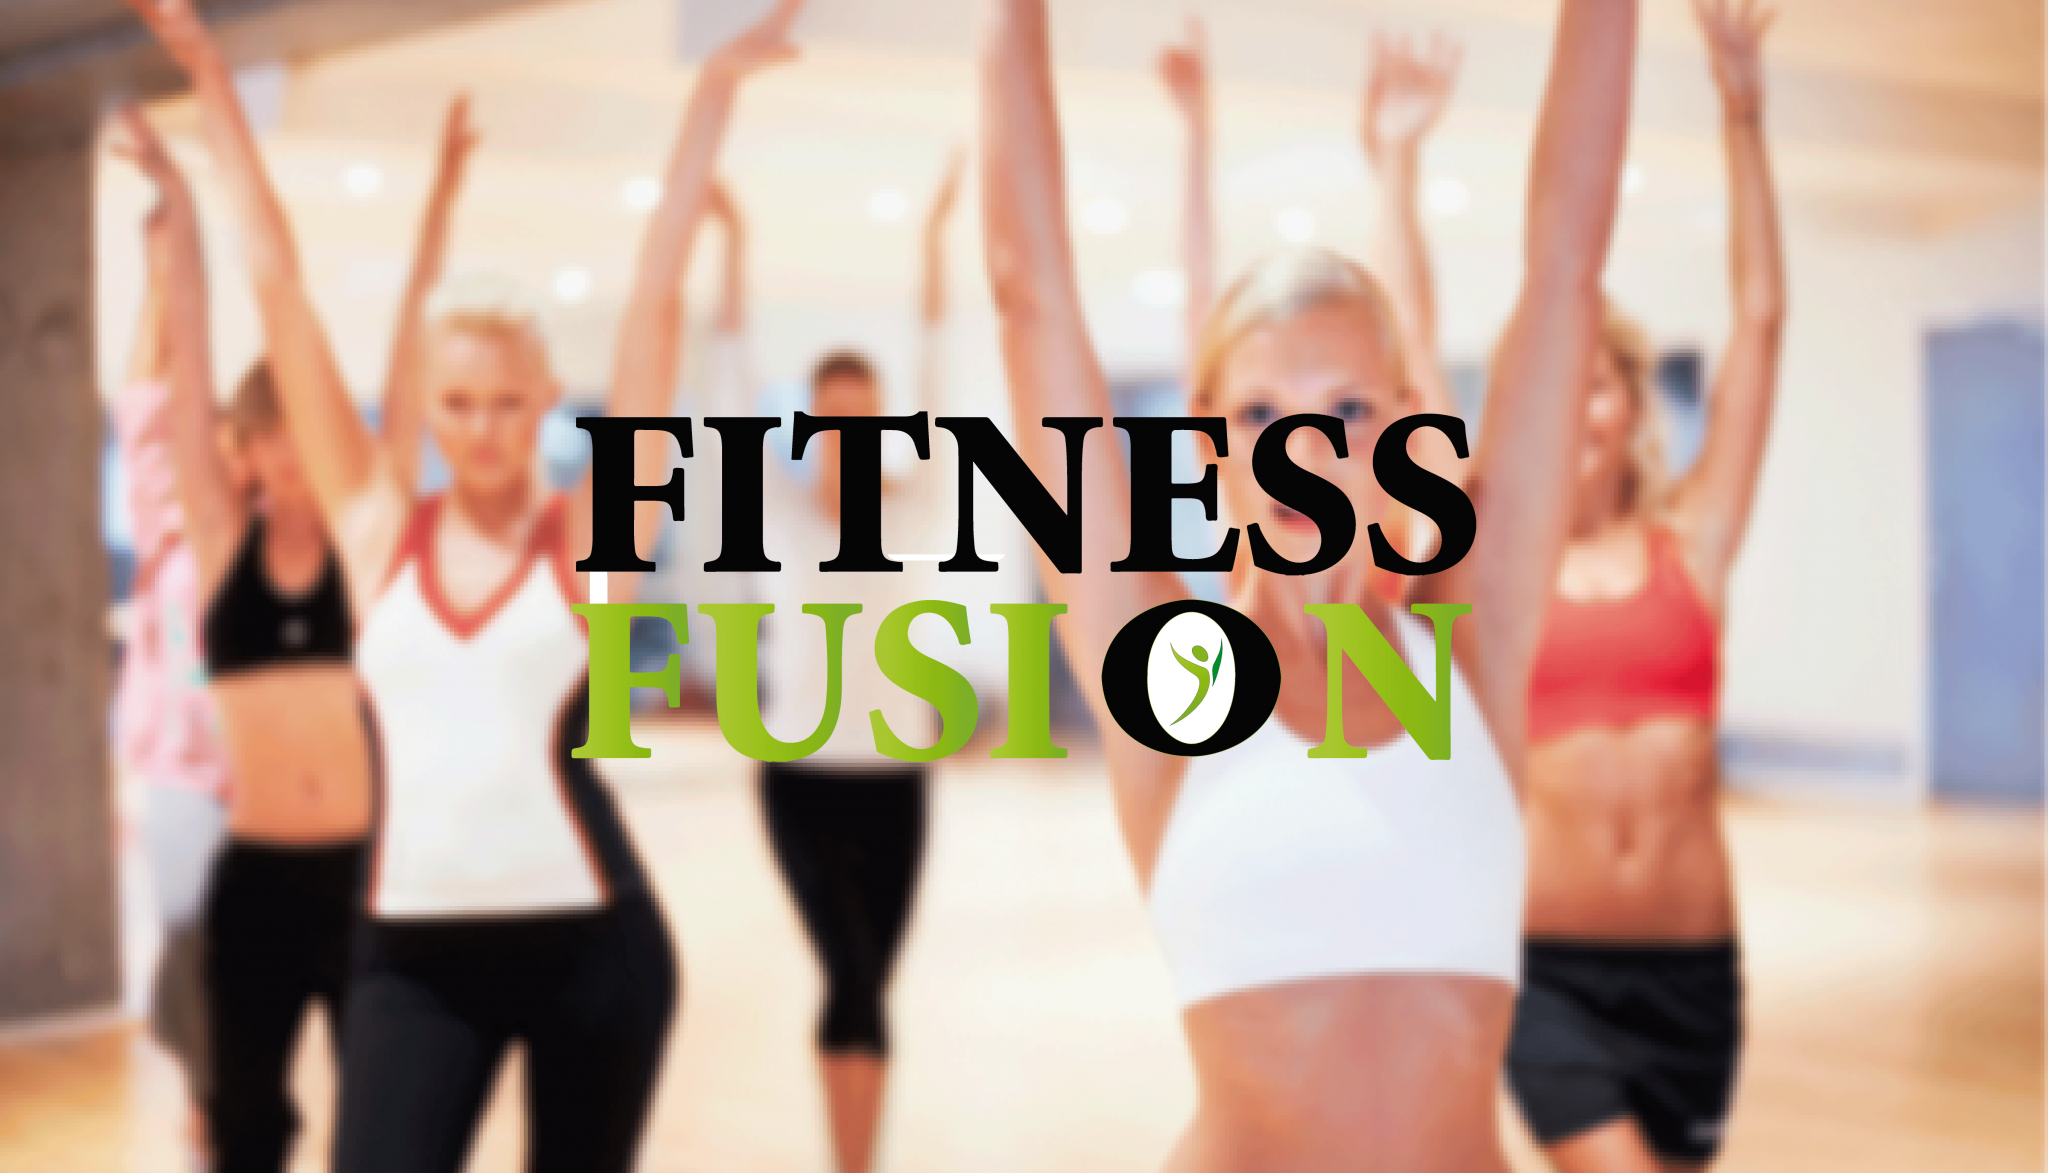 FITNESS FUSION HOME 3